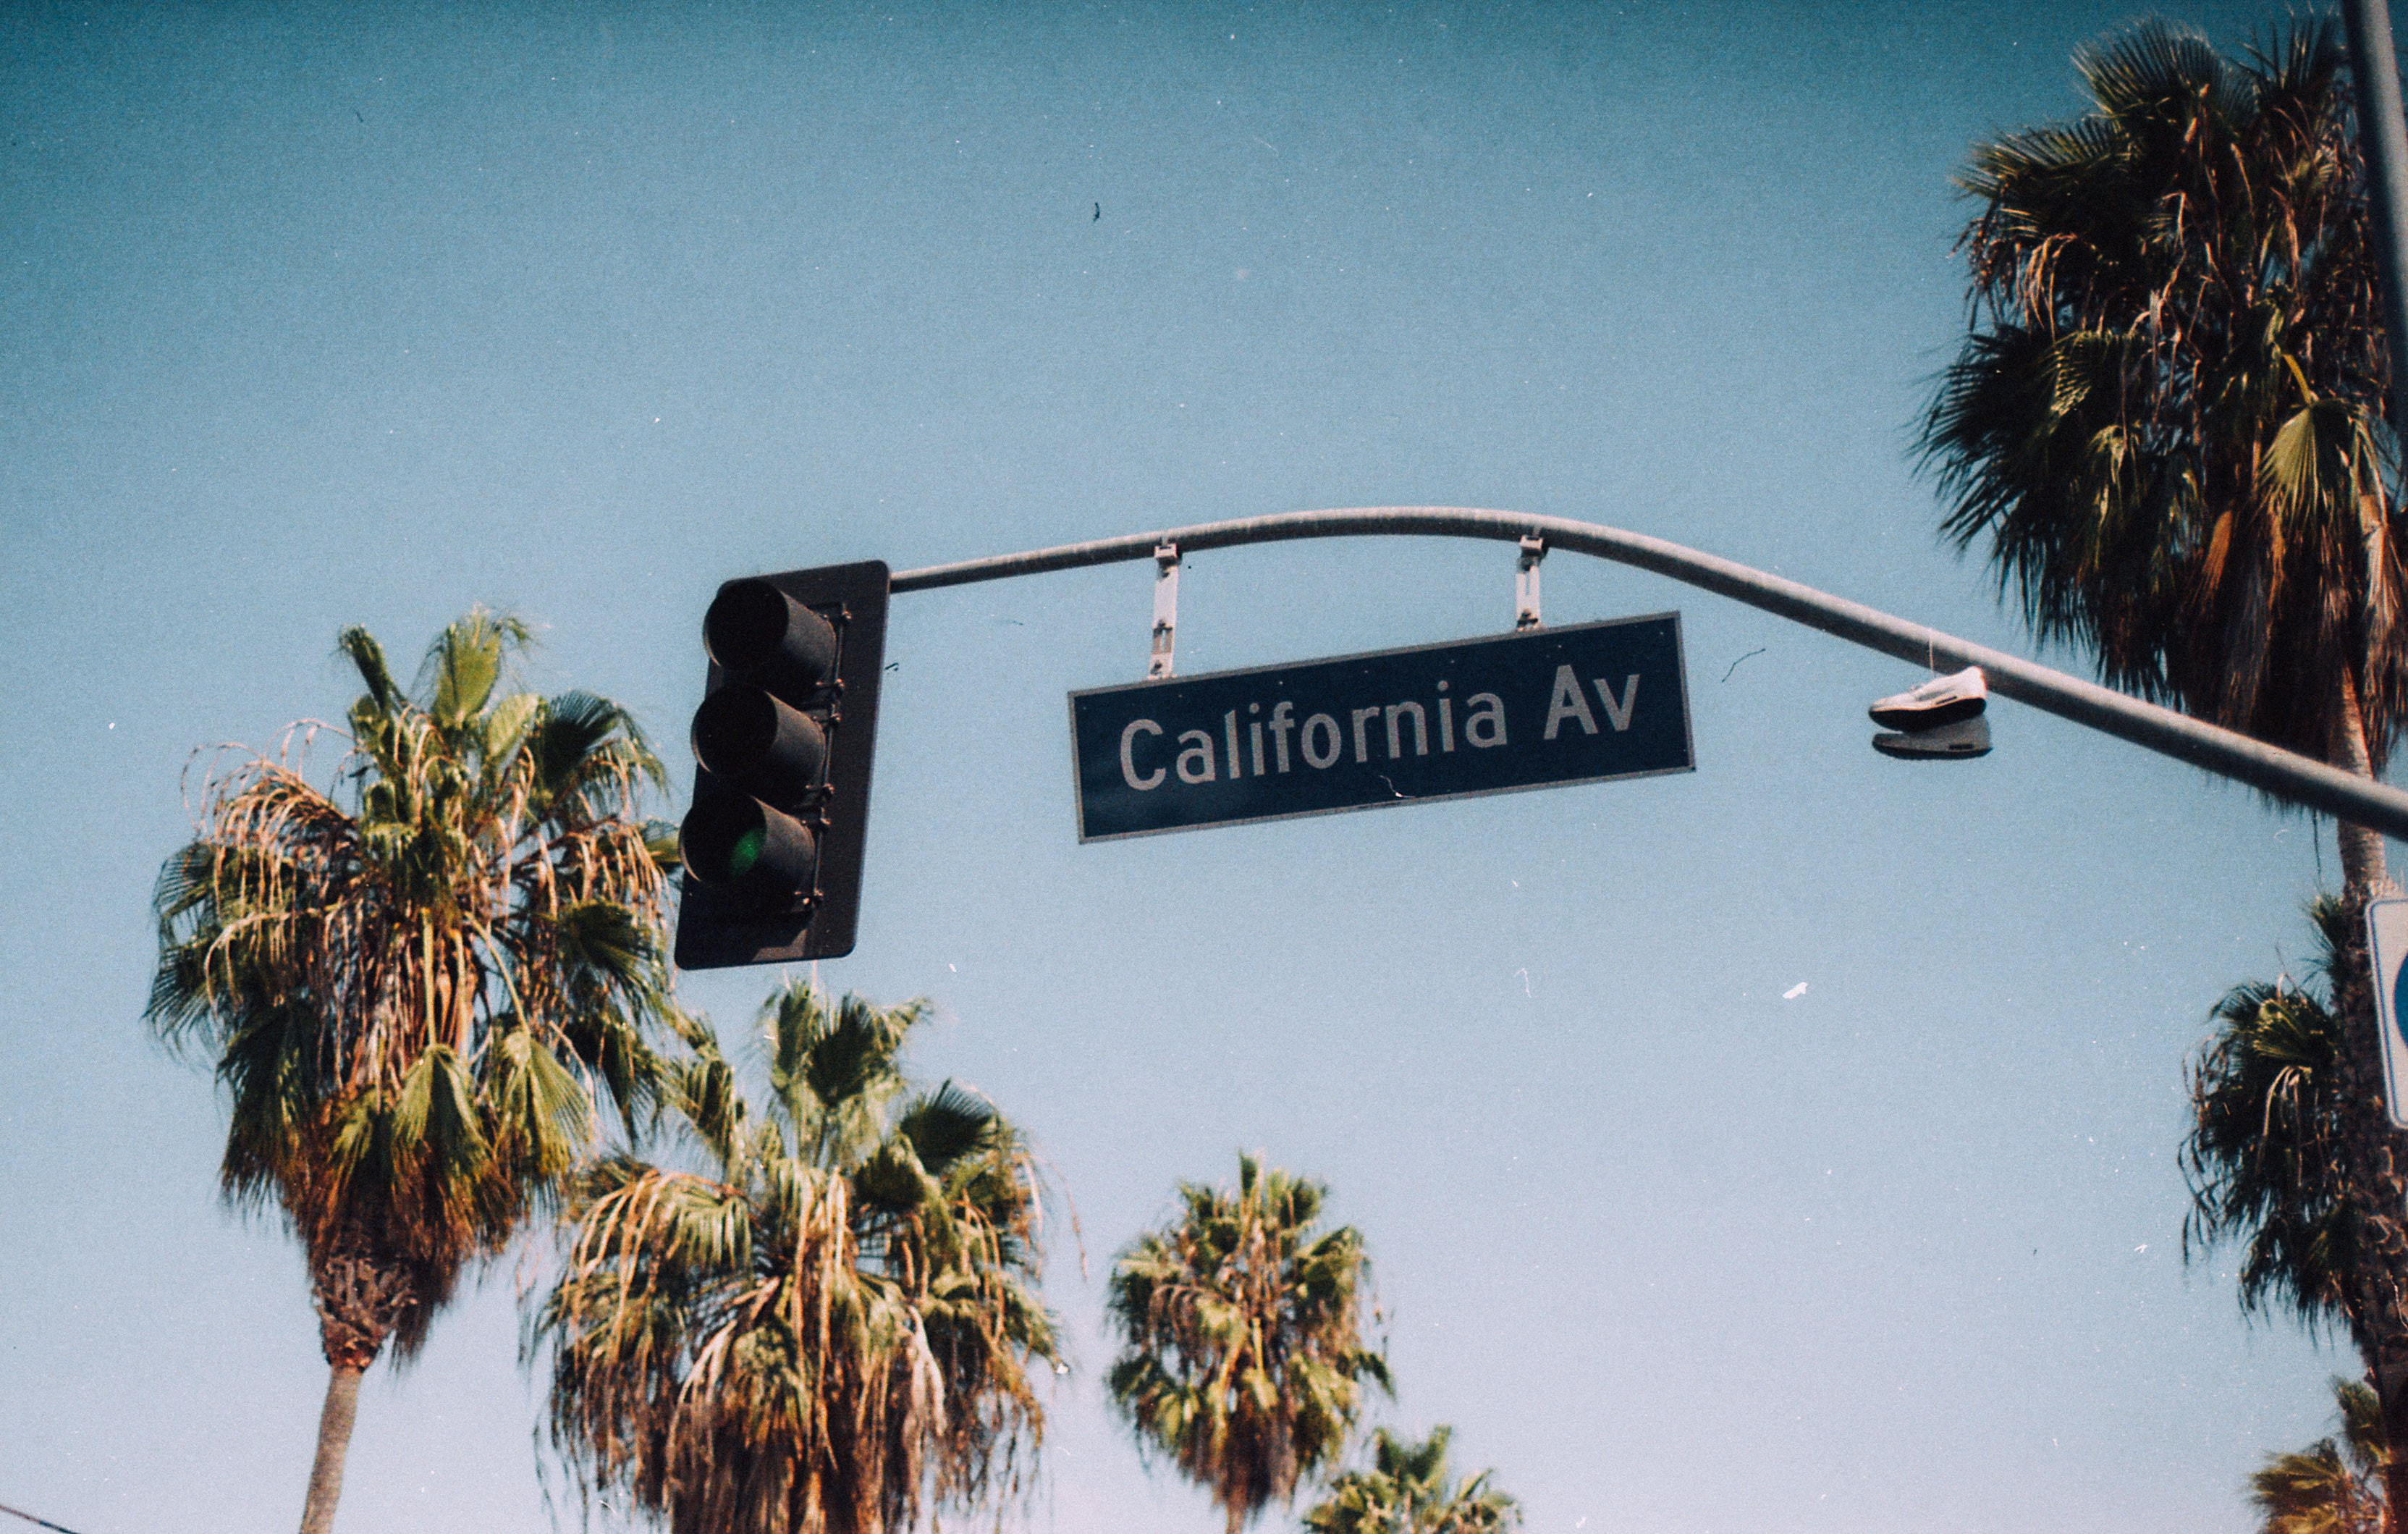 California Av signage on traffic light post